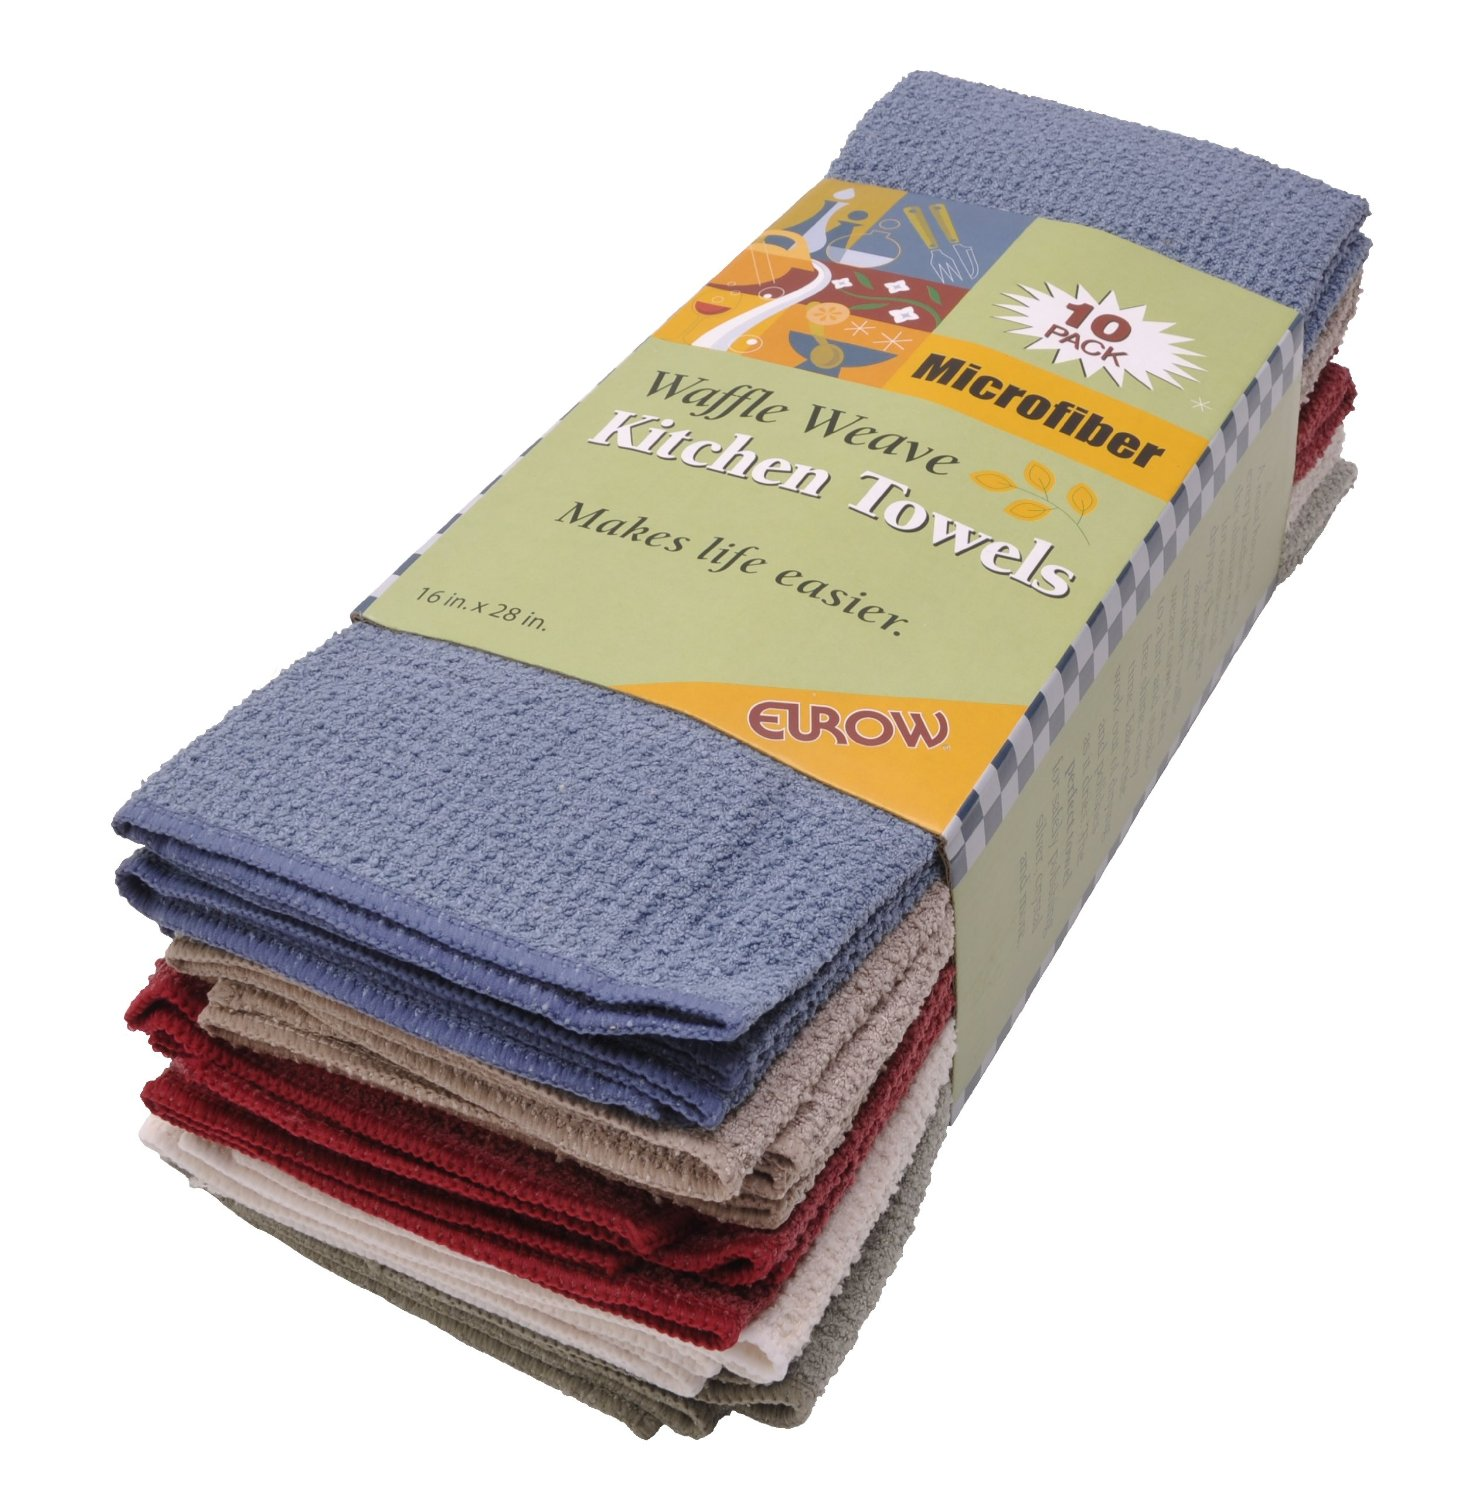 Eurow Microfiber Waffle Weave Kitchen Towels (10-pack) by Eurow & O'Reilly Corp.